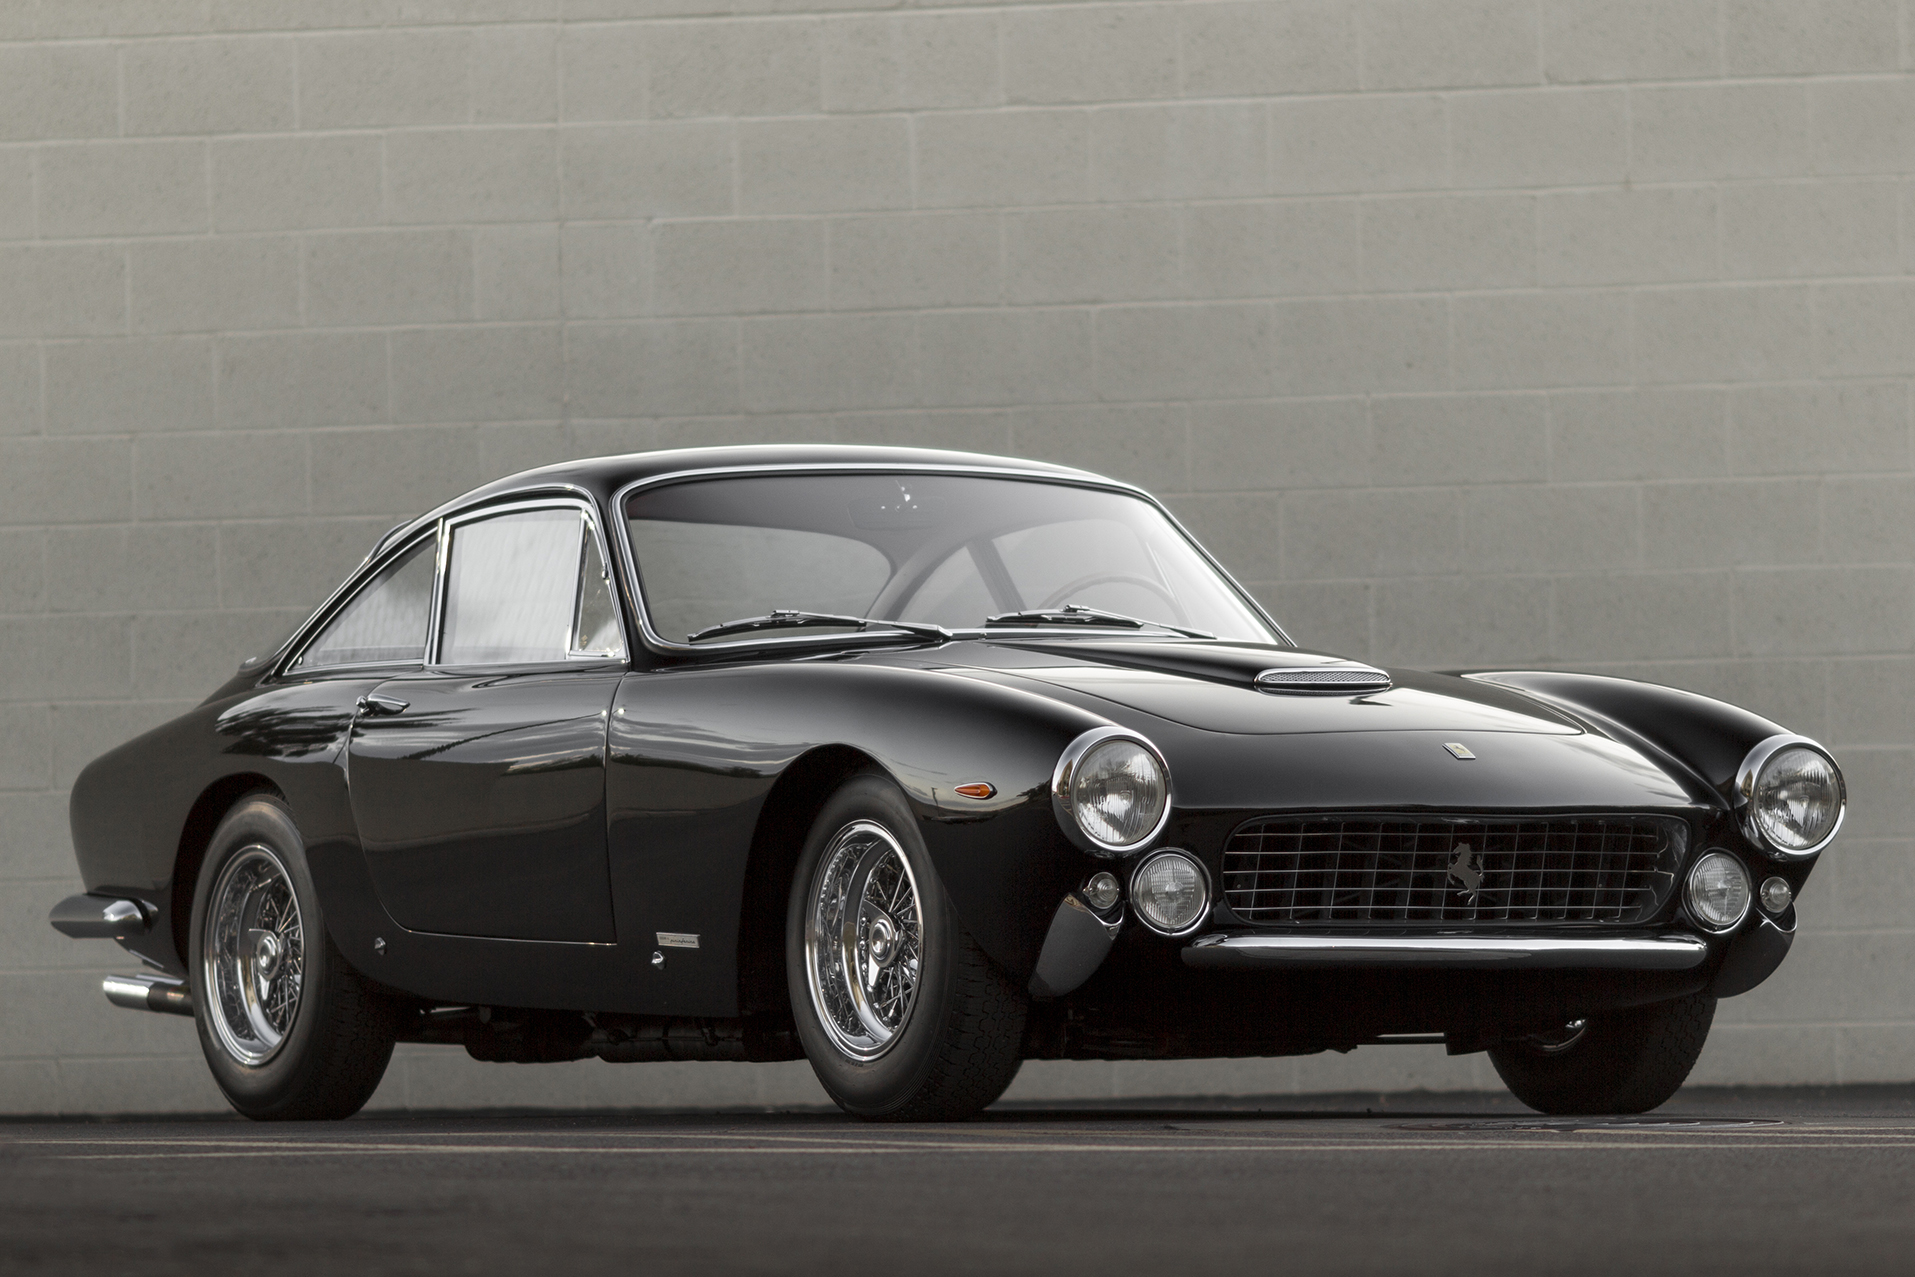 russo and steele exquisite 1963 ferrari 250gt l. Black Bedroom Furniture Sets. Home Design Ideas